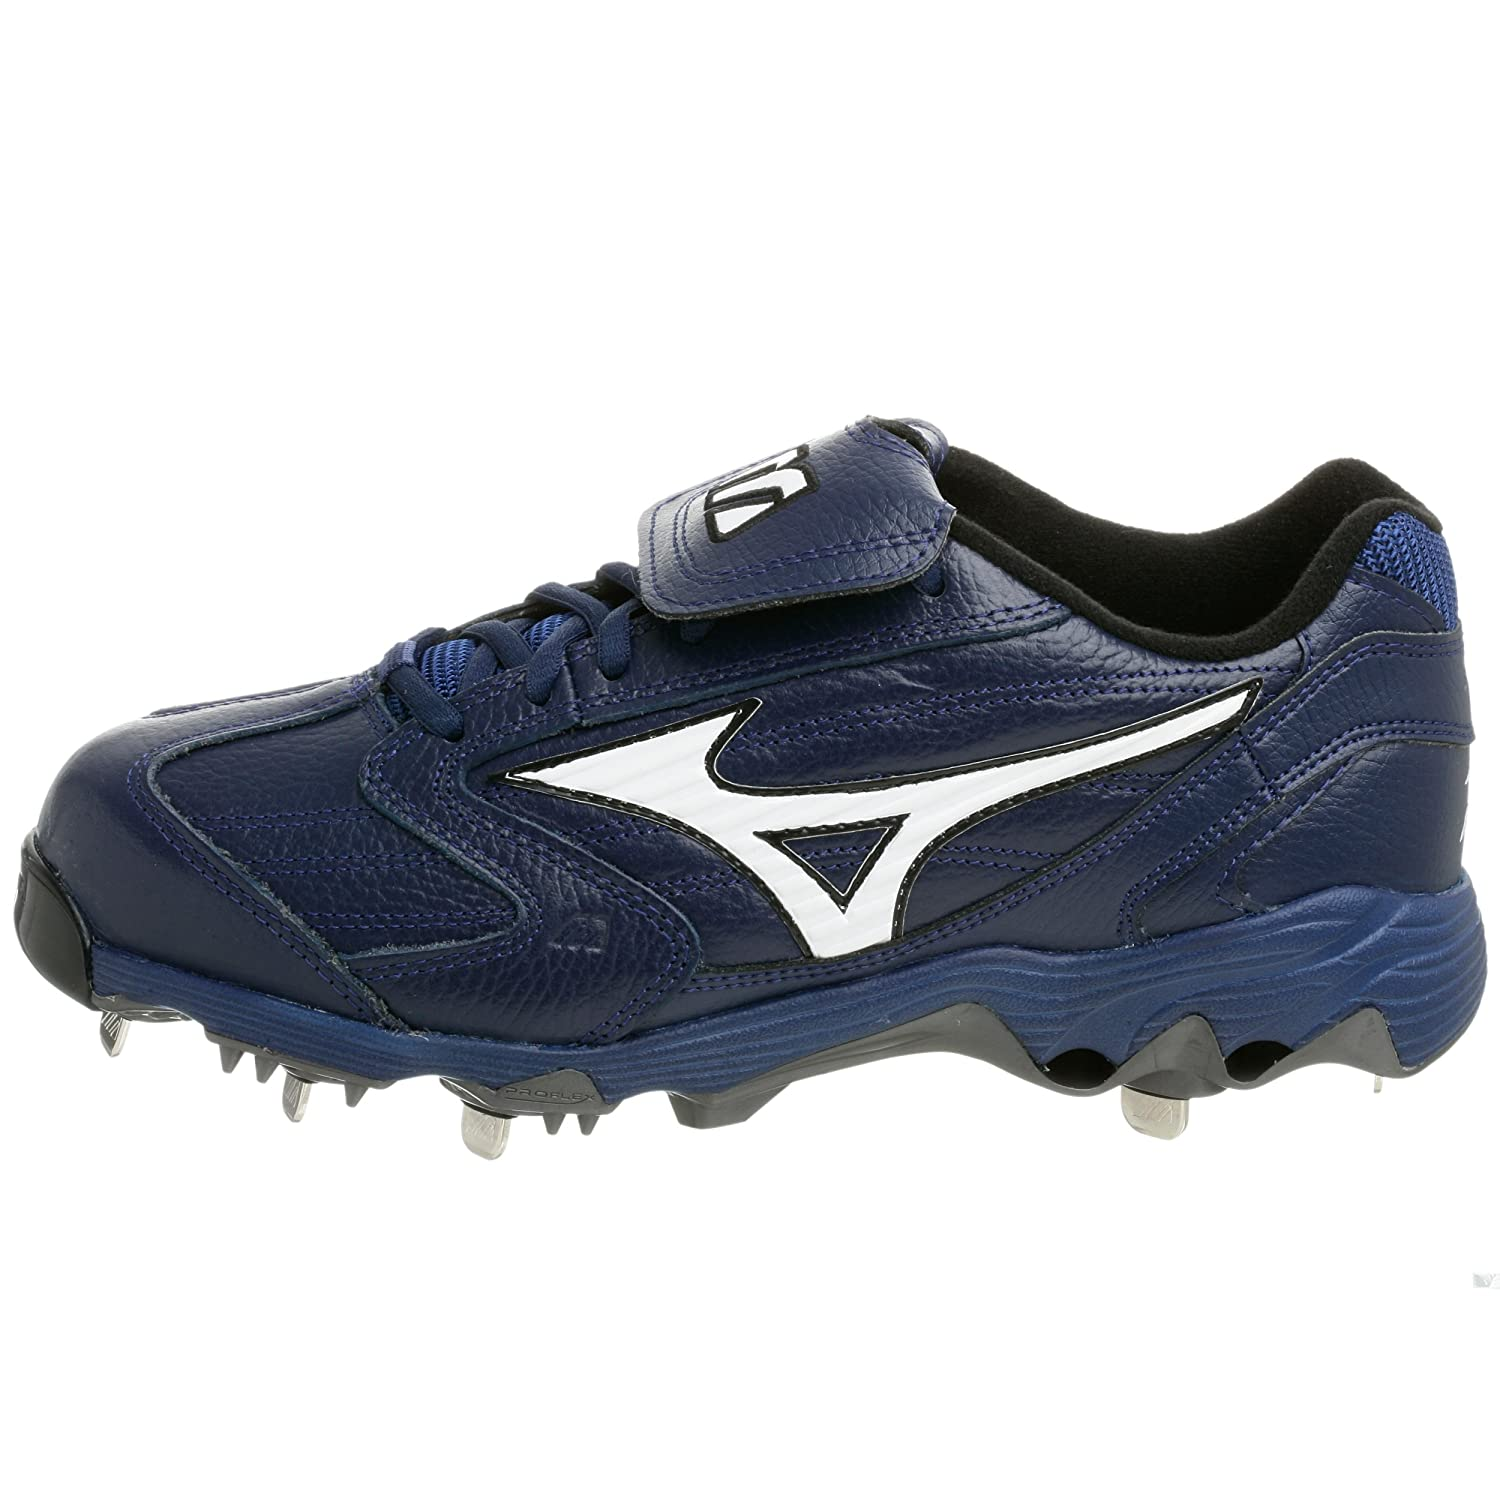 Mizuno Mens 9-Spike Classic Low G4 Cleat